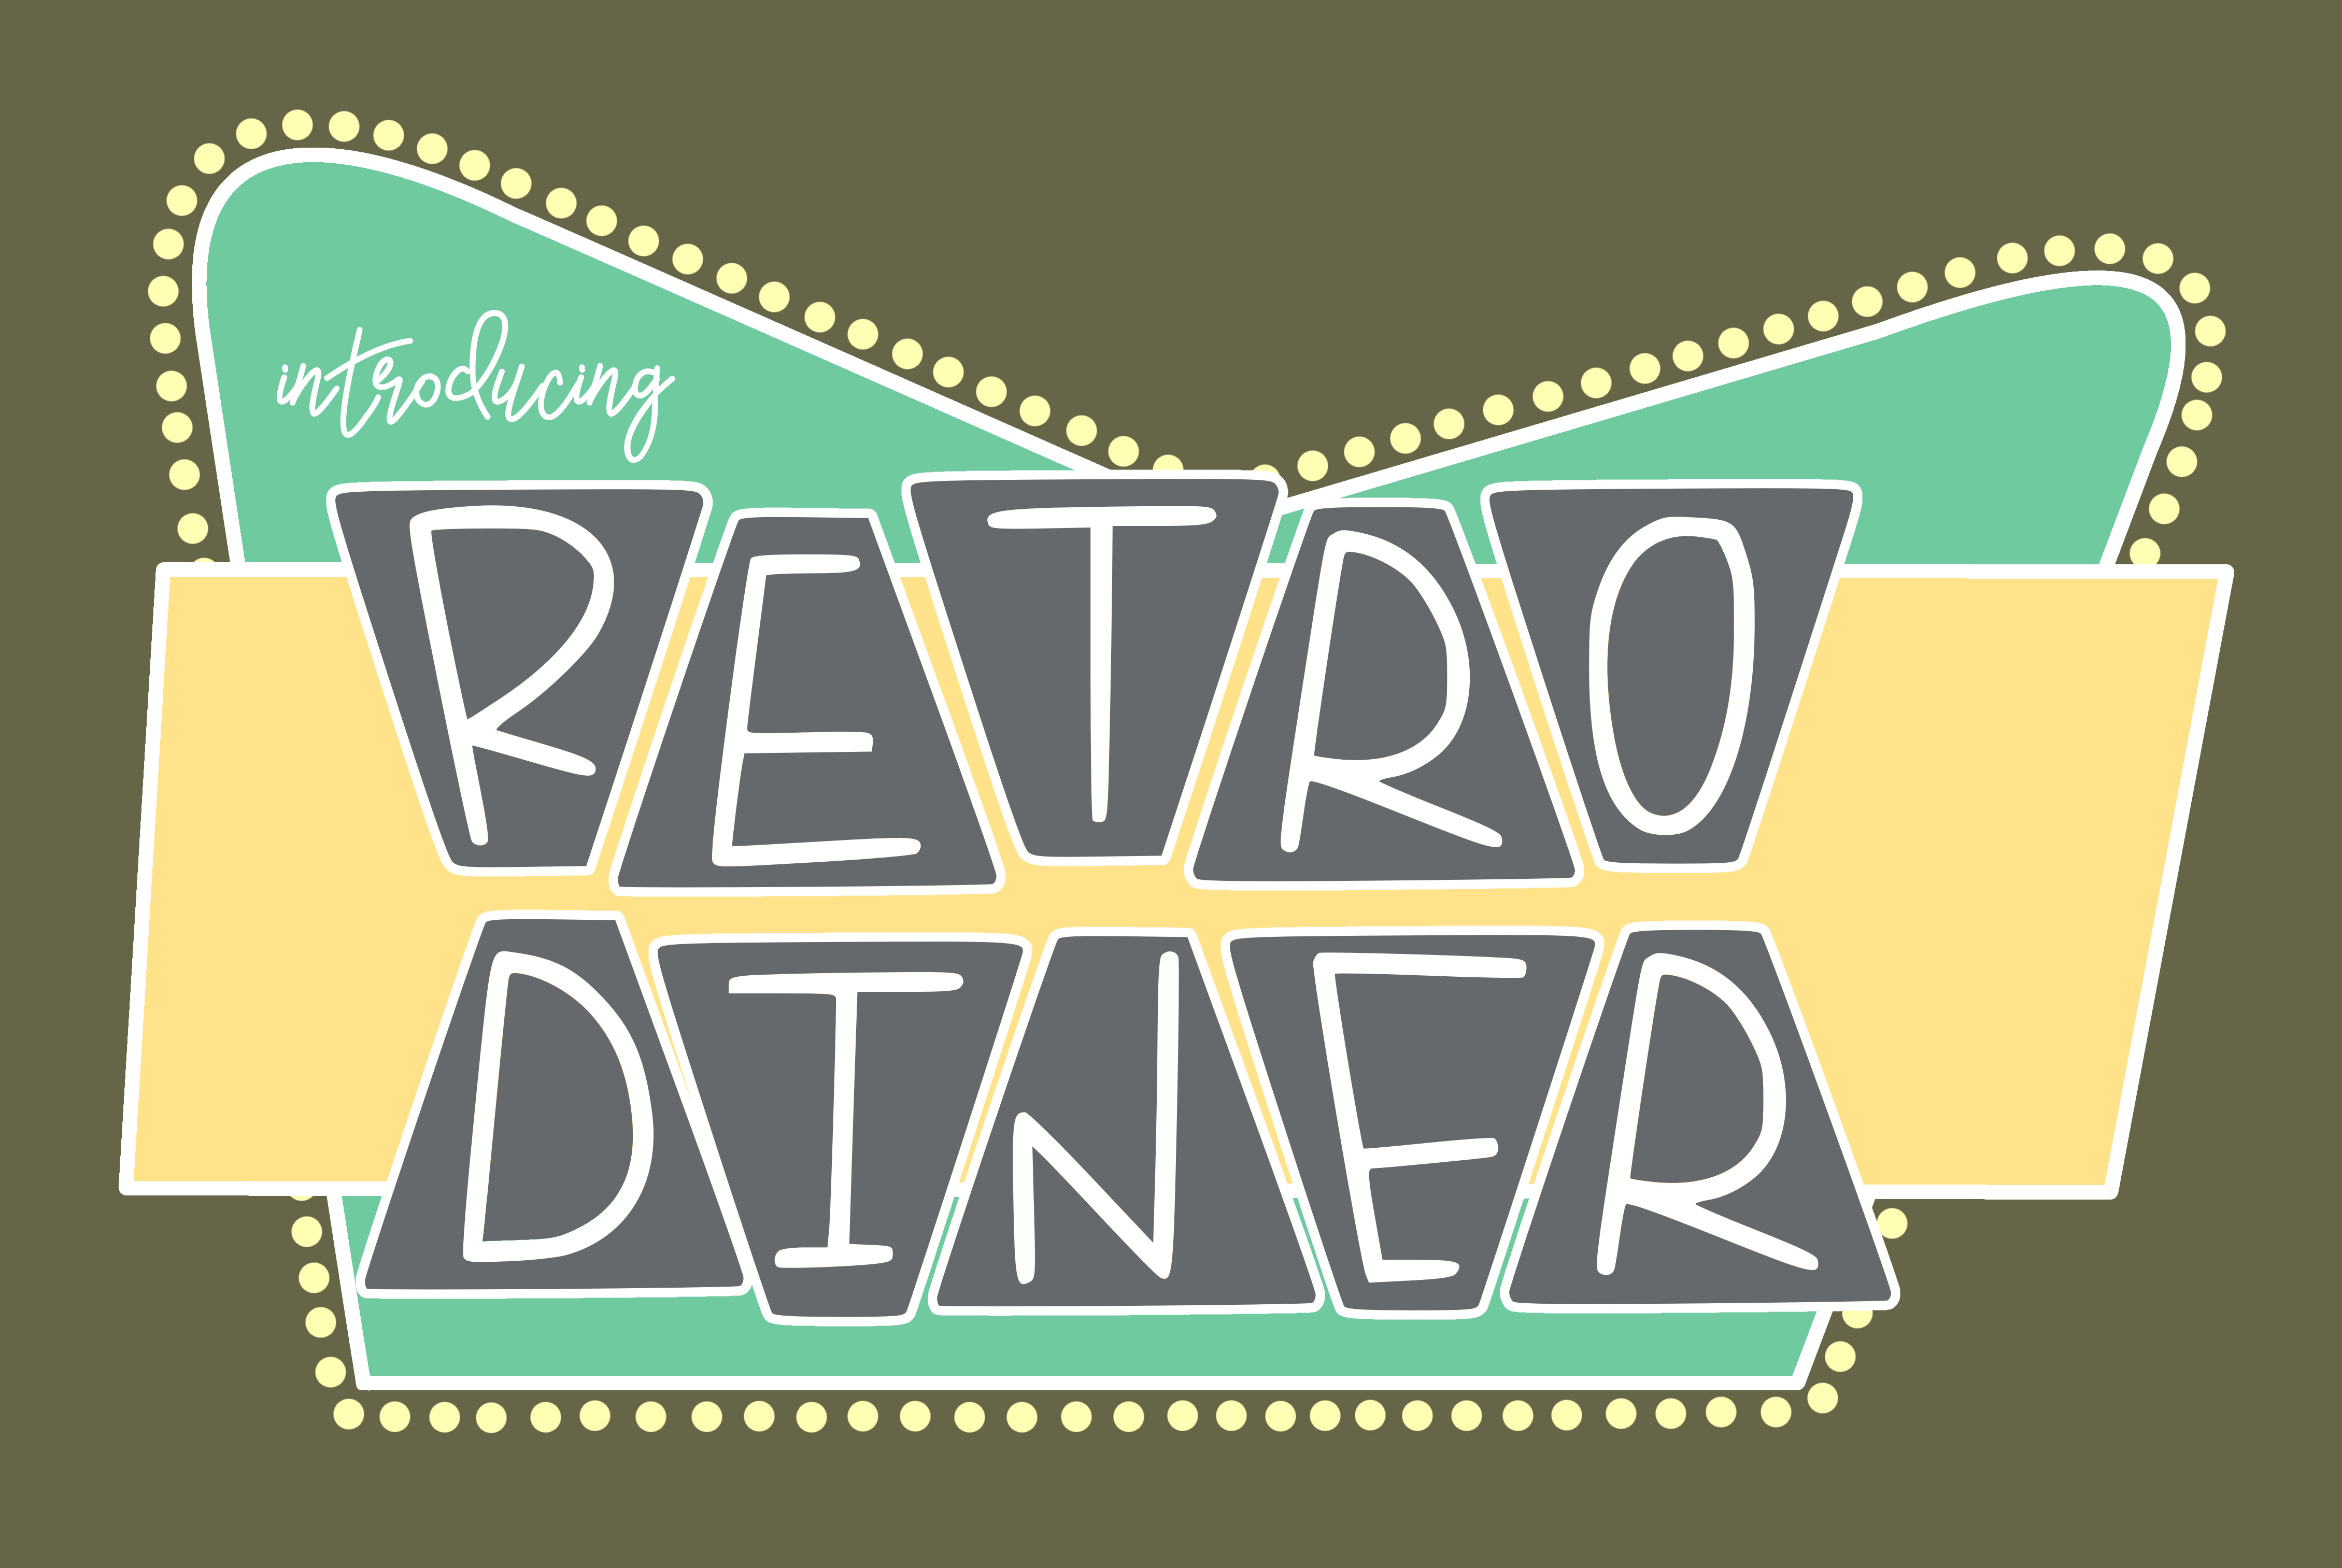 Retro Diner example image 1